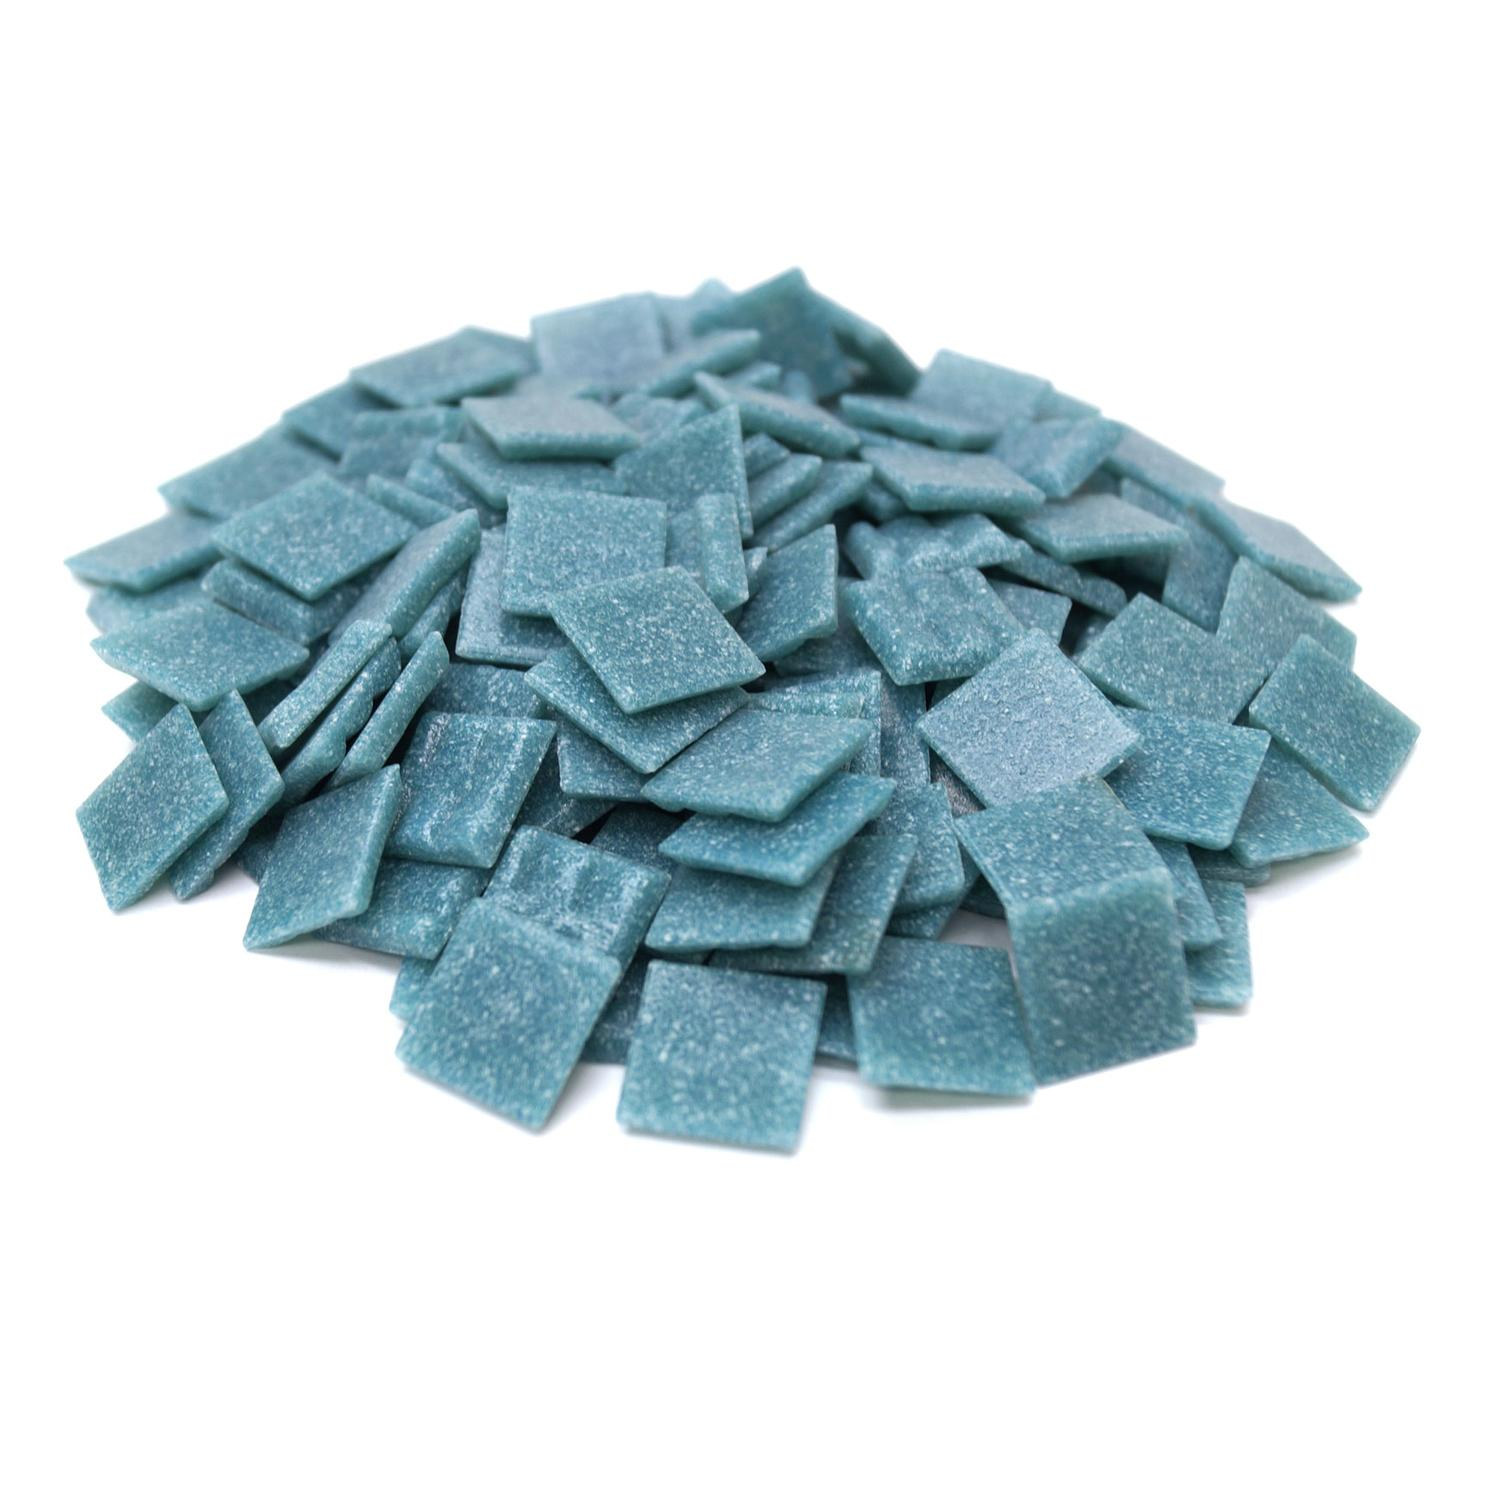 3/4 Lagoon Glass Tile - 1 lb